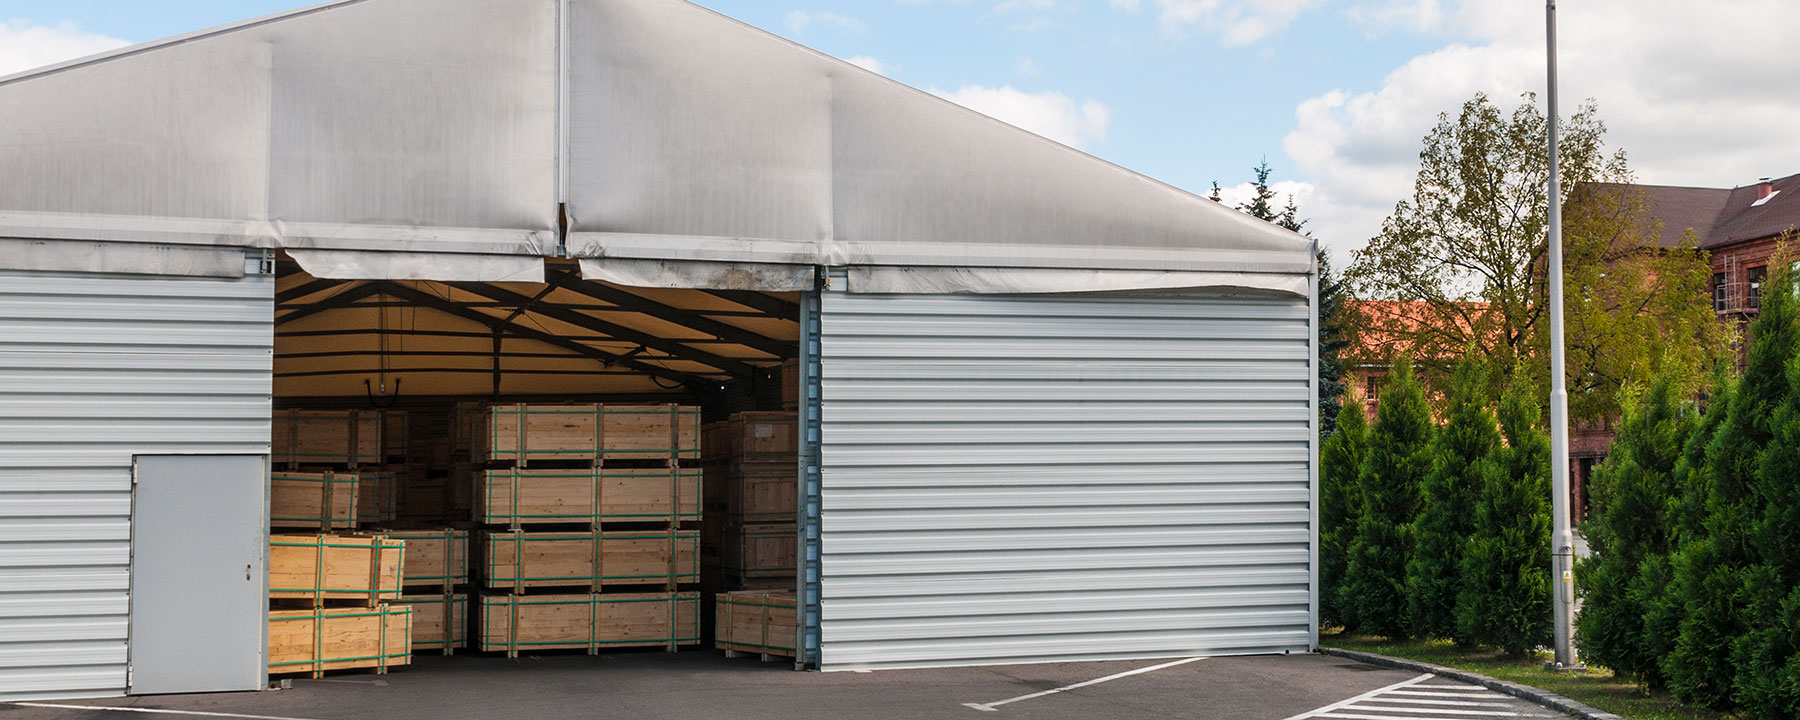 Westgate Mini Storage Developed by FIRC Group Asheville